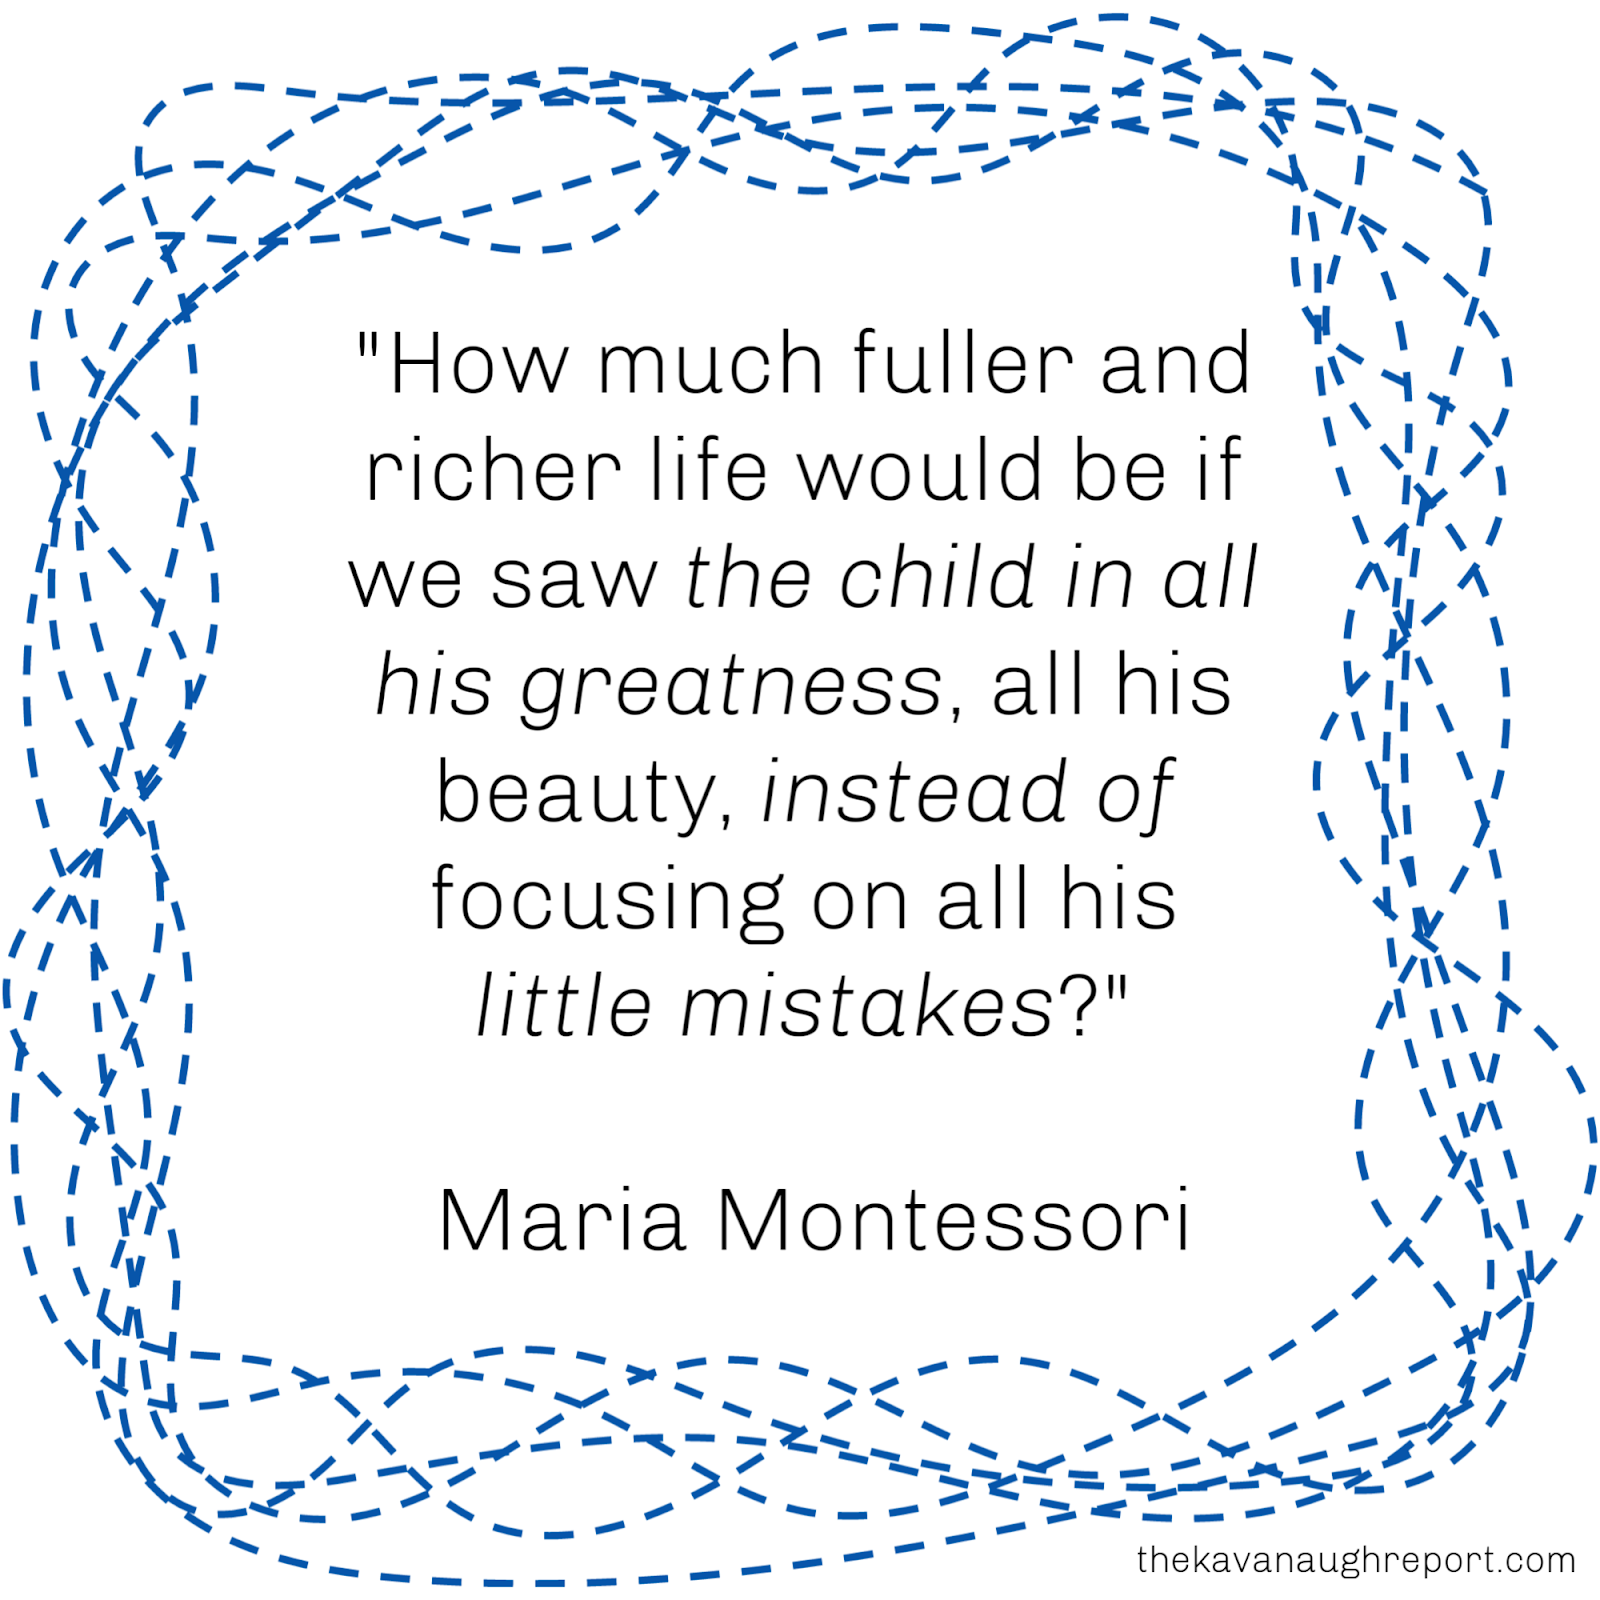 Reflecting on my goal for 2019 - a quote by Maria Montessori